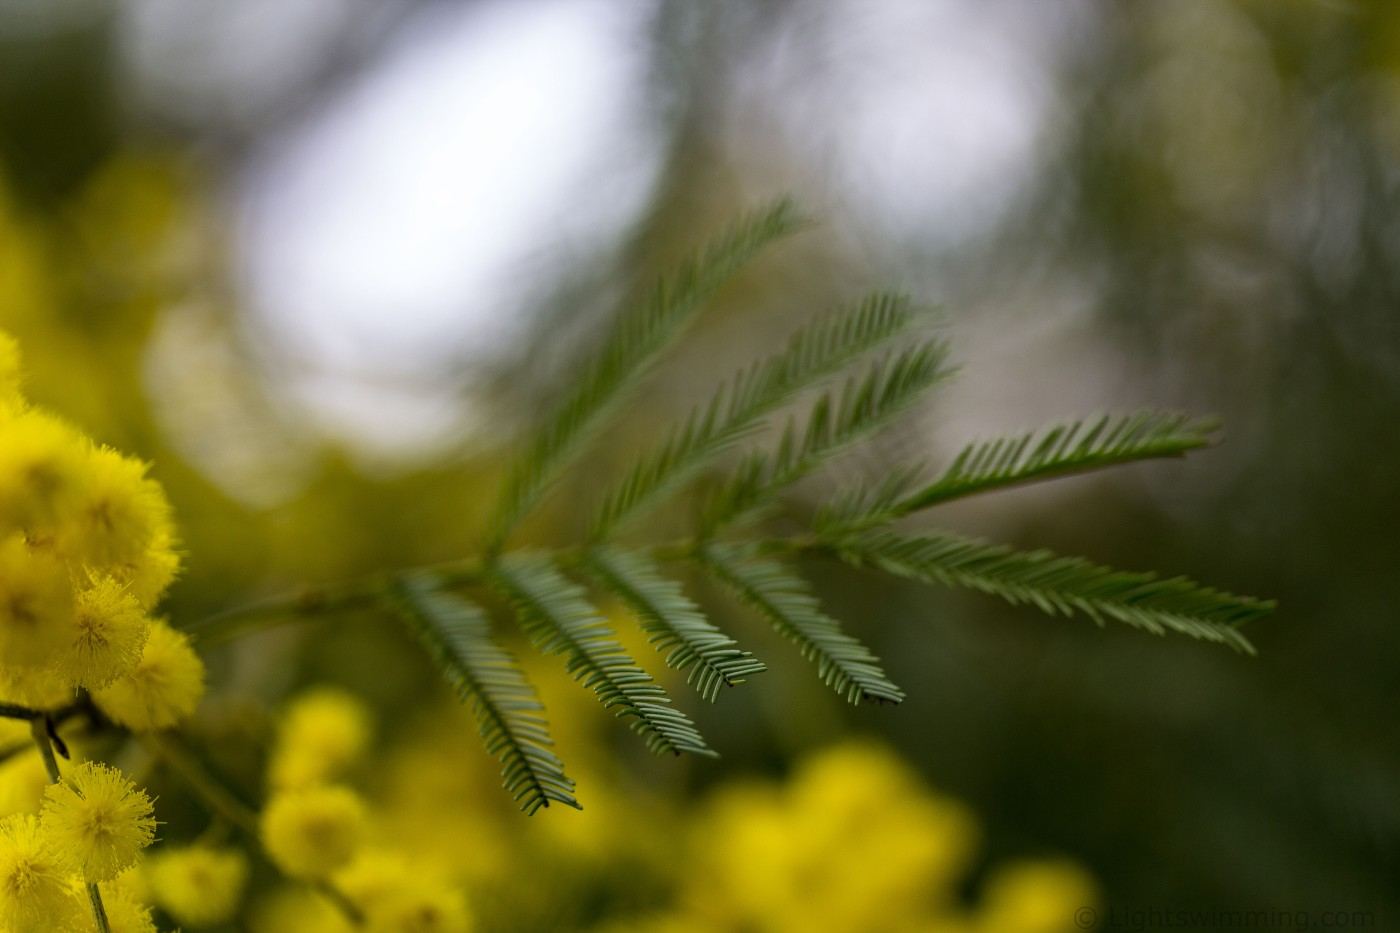 Wattle flower and new leaves up close, Macedon Ranges